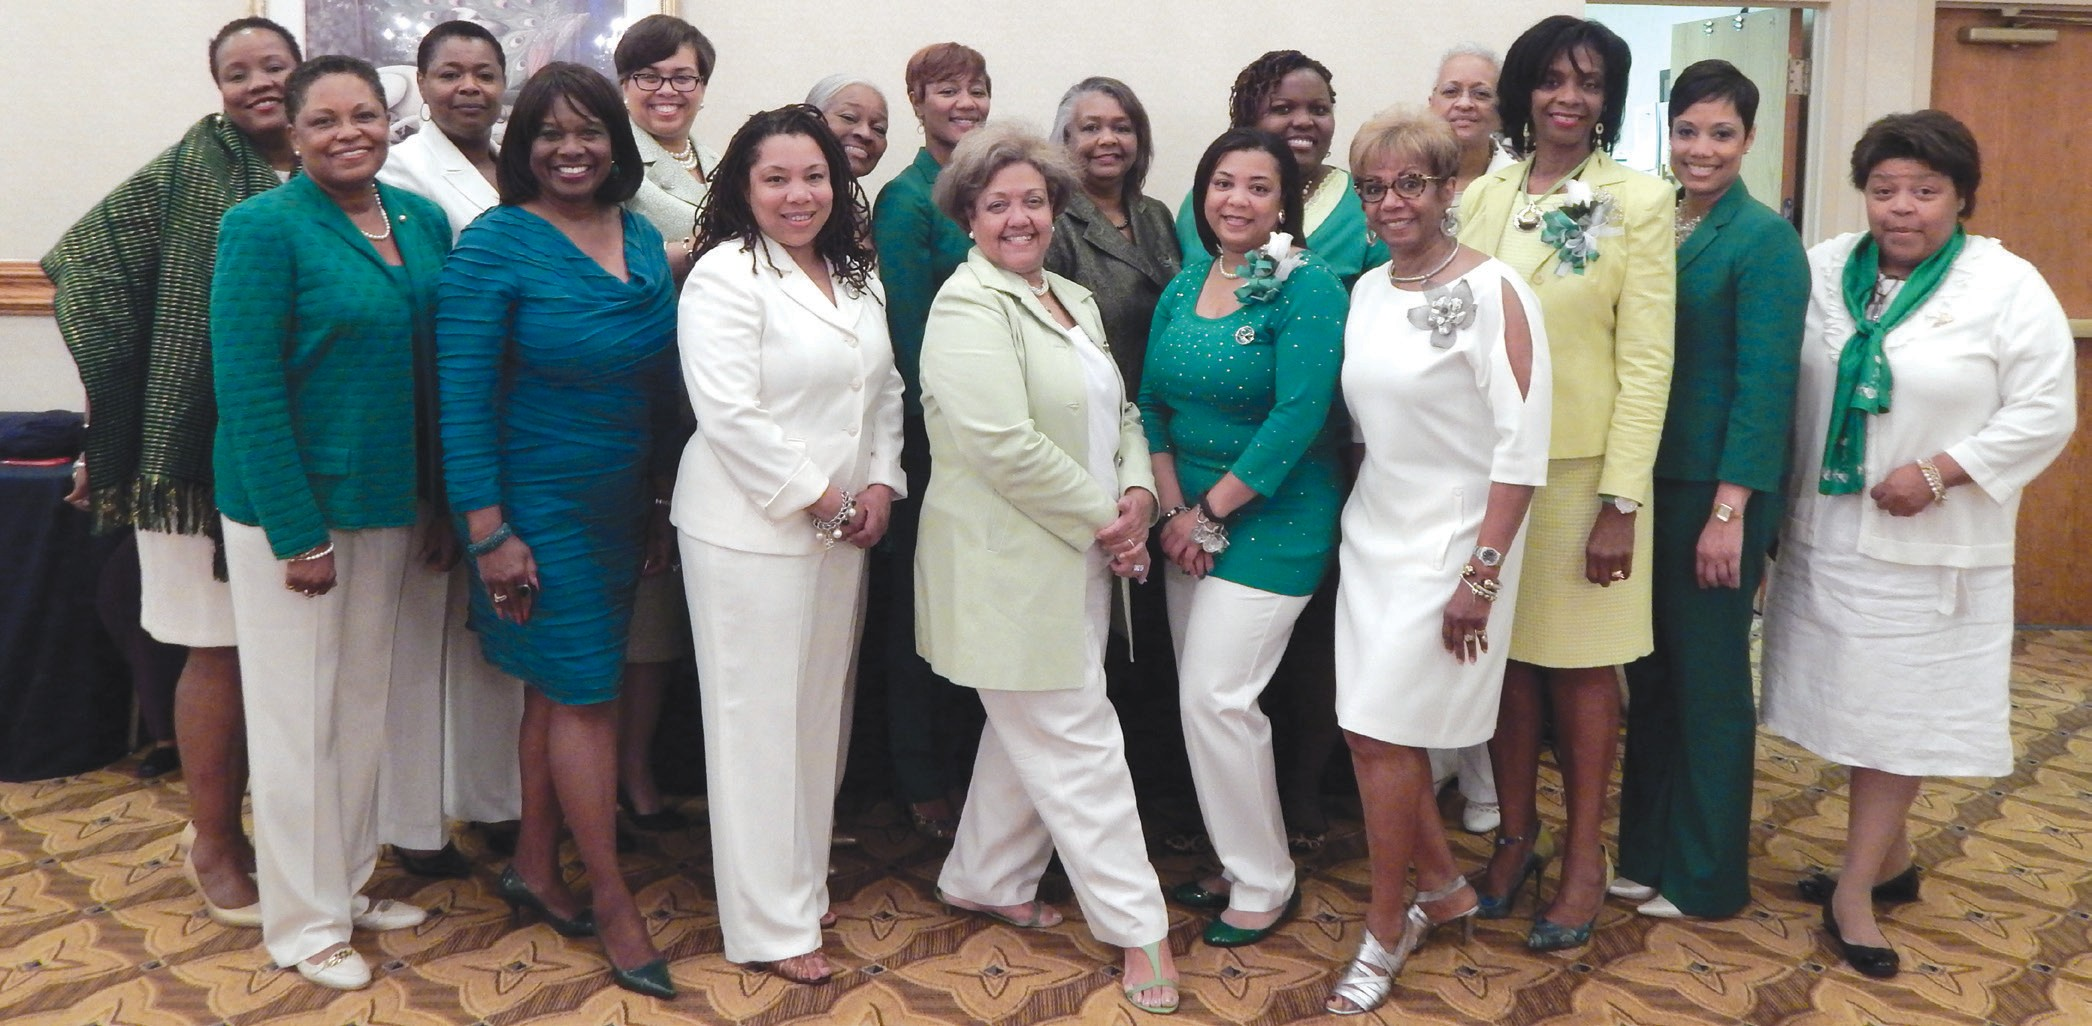 Members of the Savannah Chapter of The Links